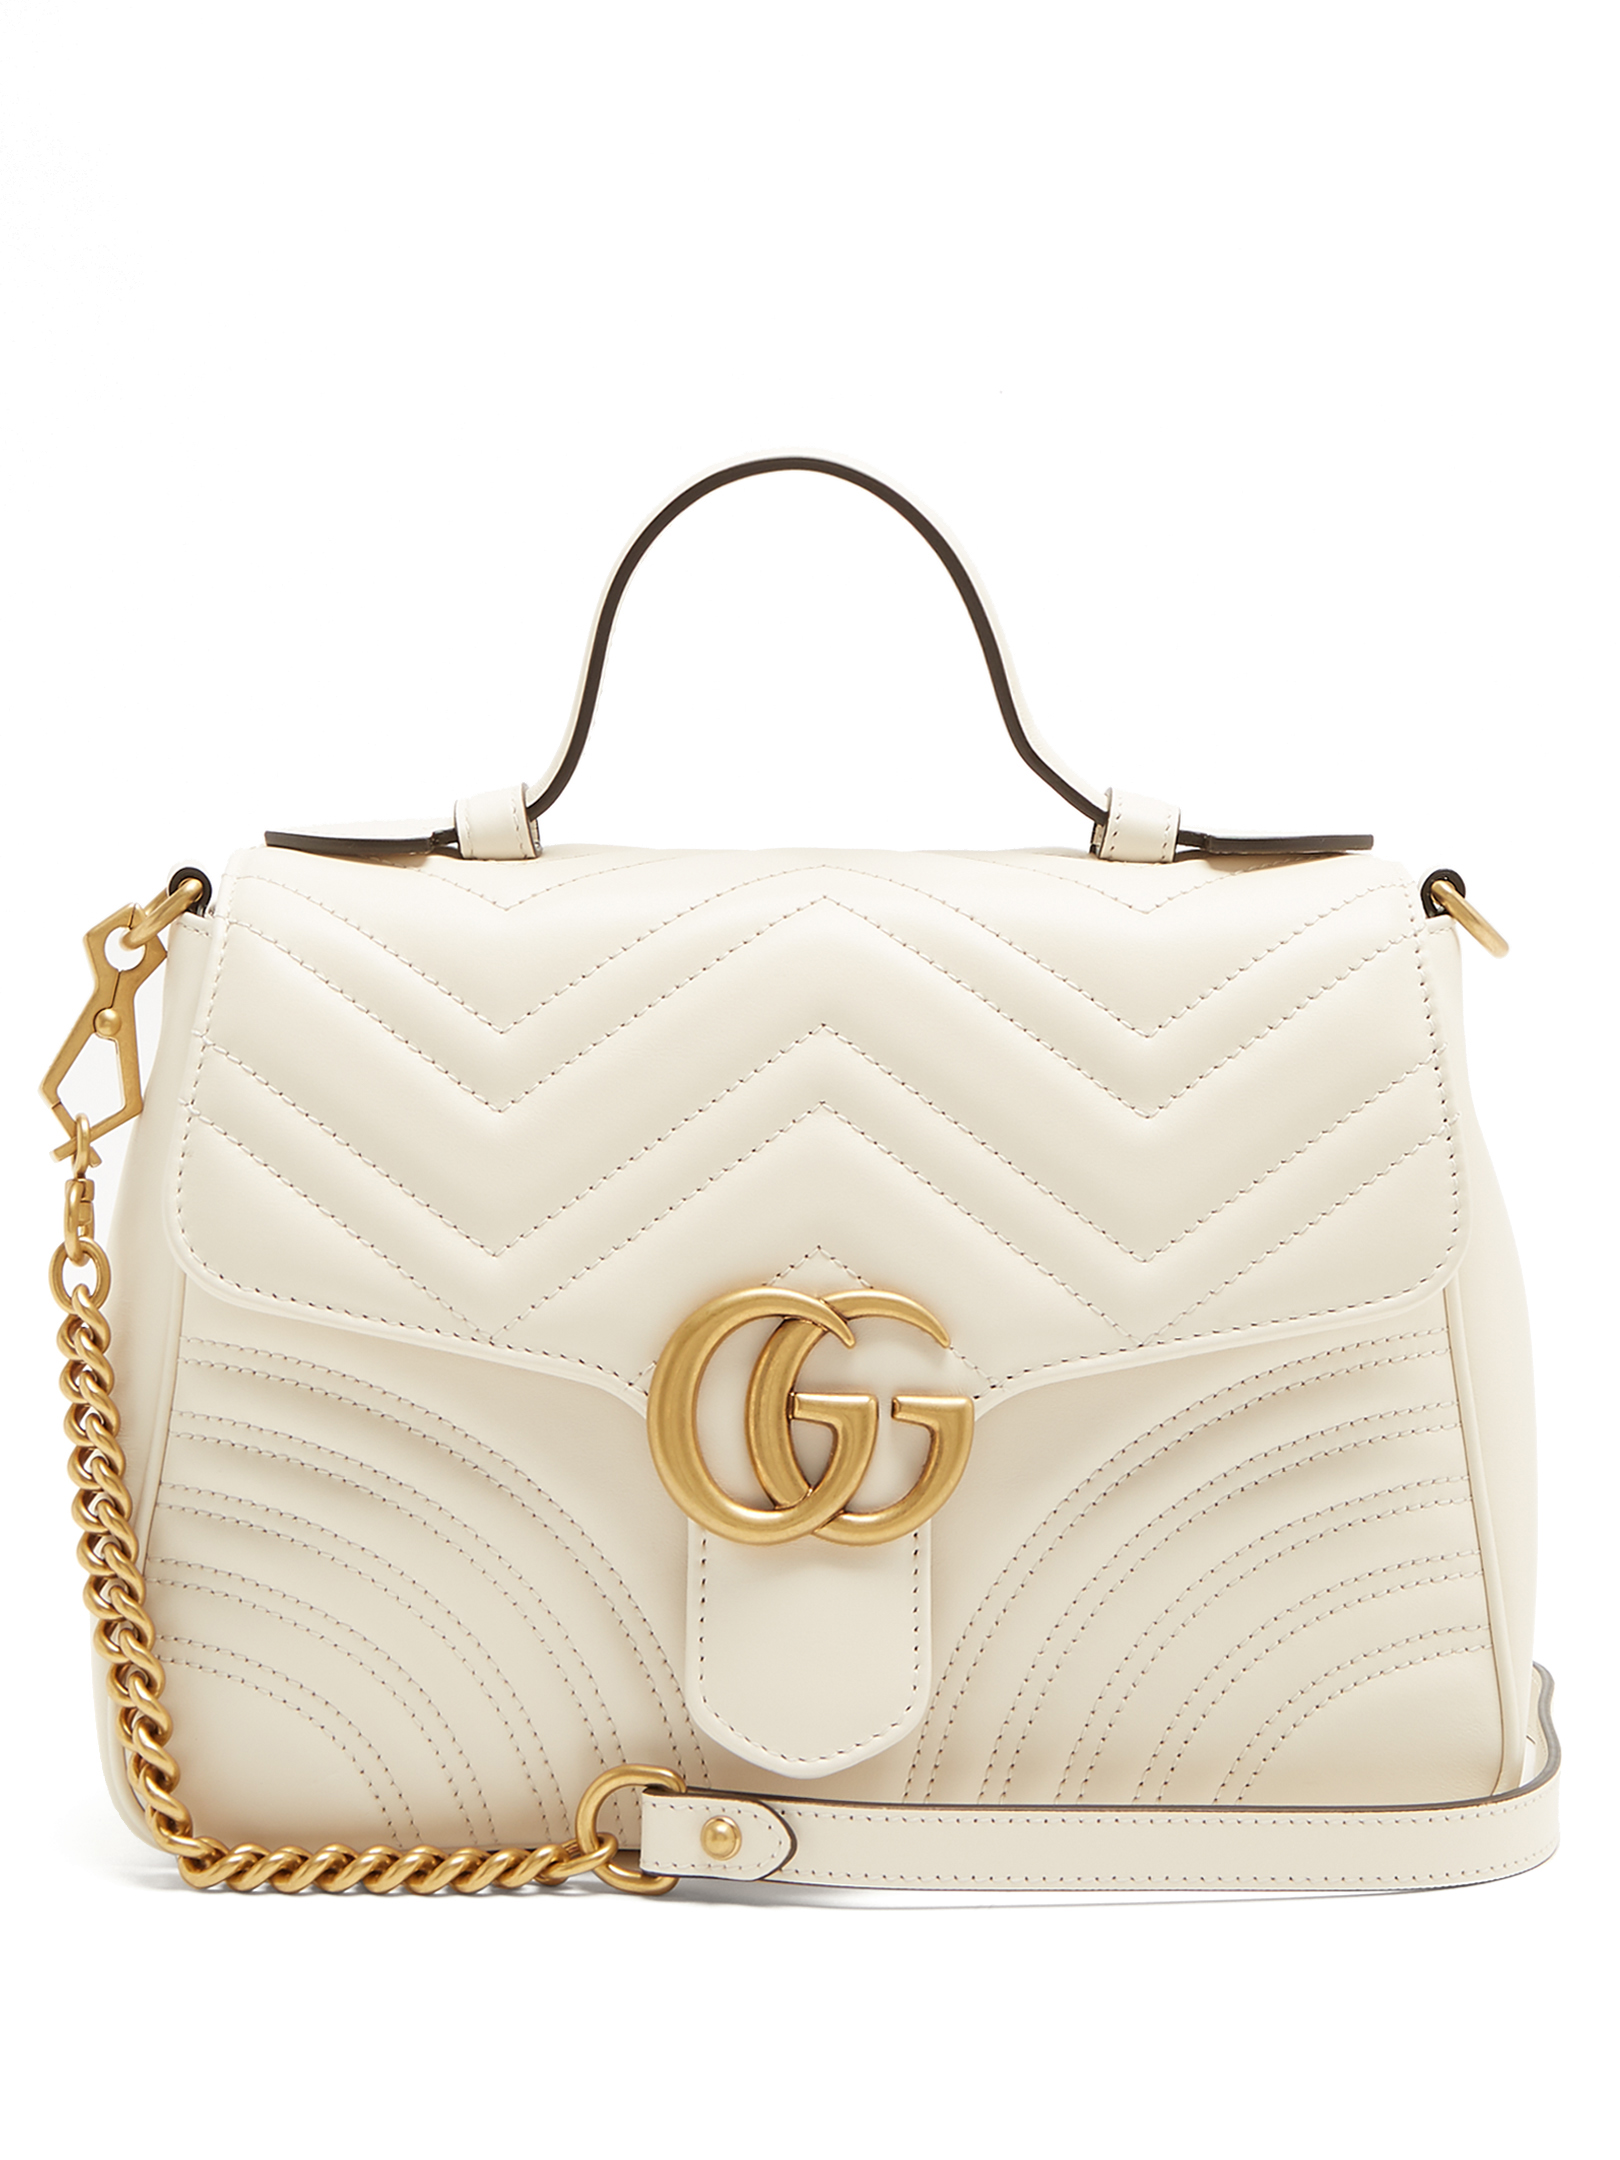 5. Gucci GG Marmont Quilted-Leather Shoulder Bag in White $2,590 from www.matchesfashion.com